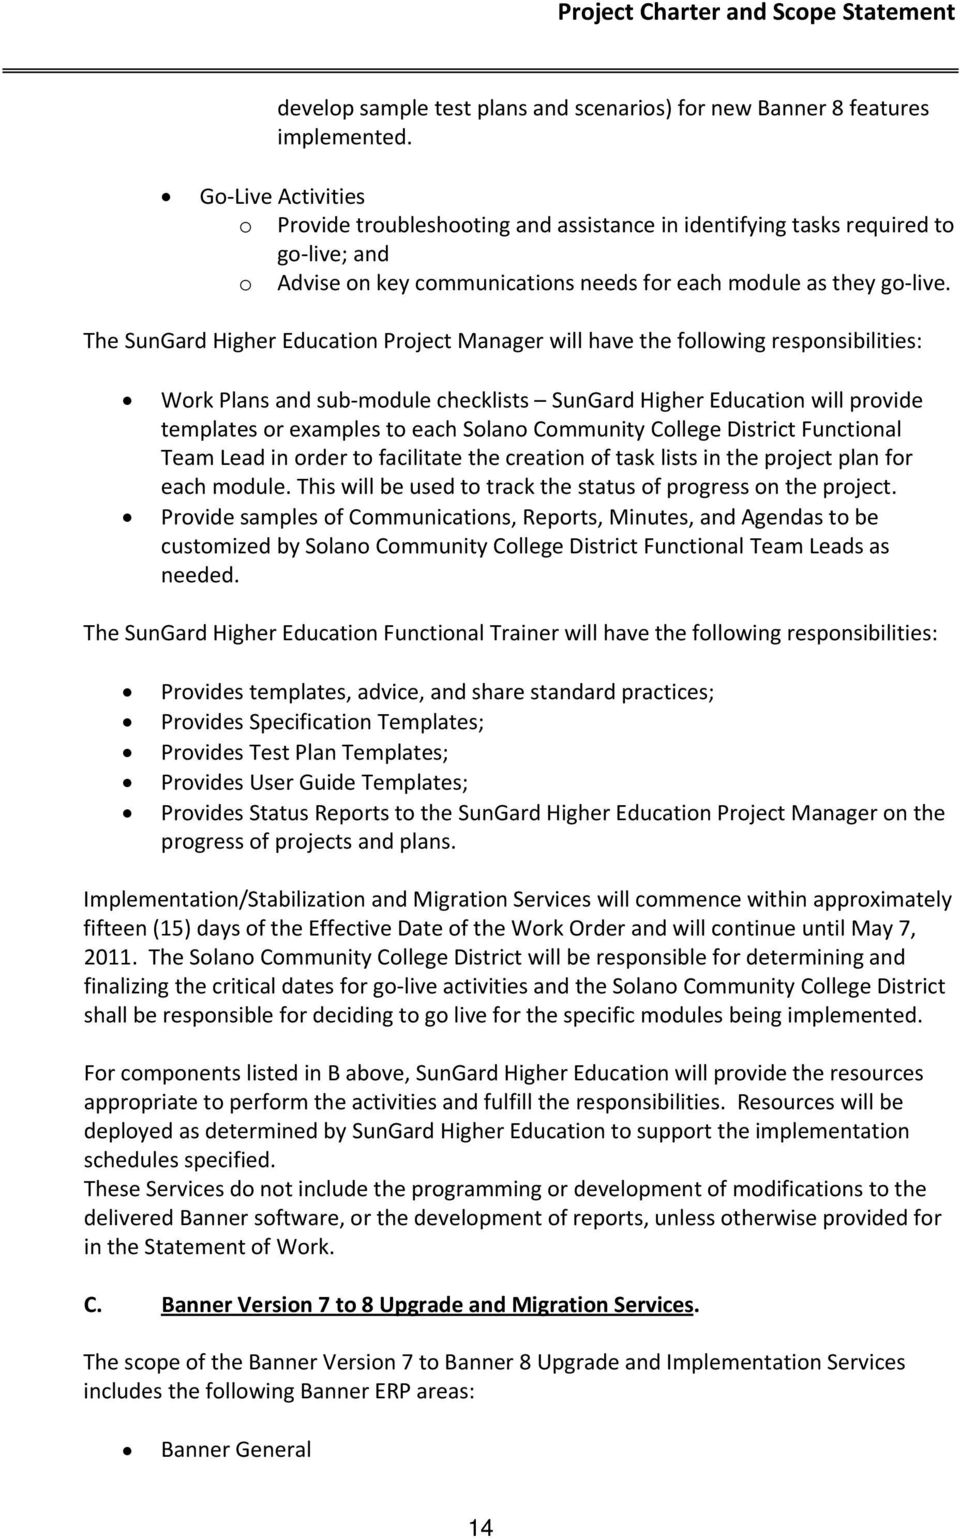 The SunGard Higher Education Project Manager will have the following responsibilities: Work Plans and sub module checklists SunGard Higher Education will provide templates or examples to each Solano